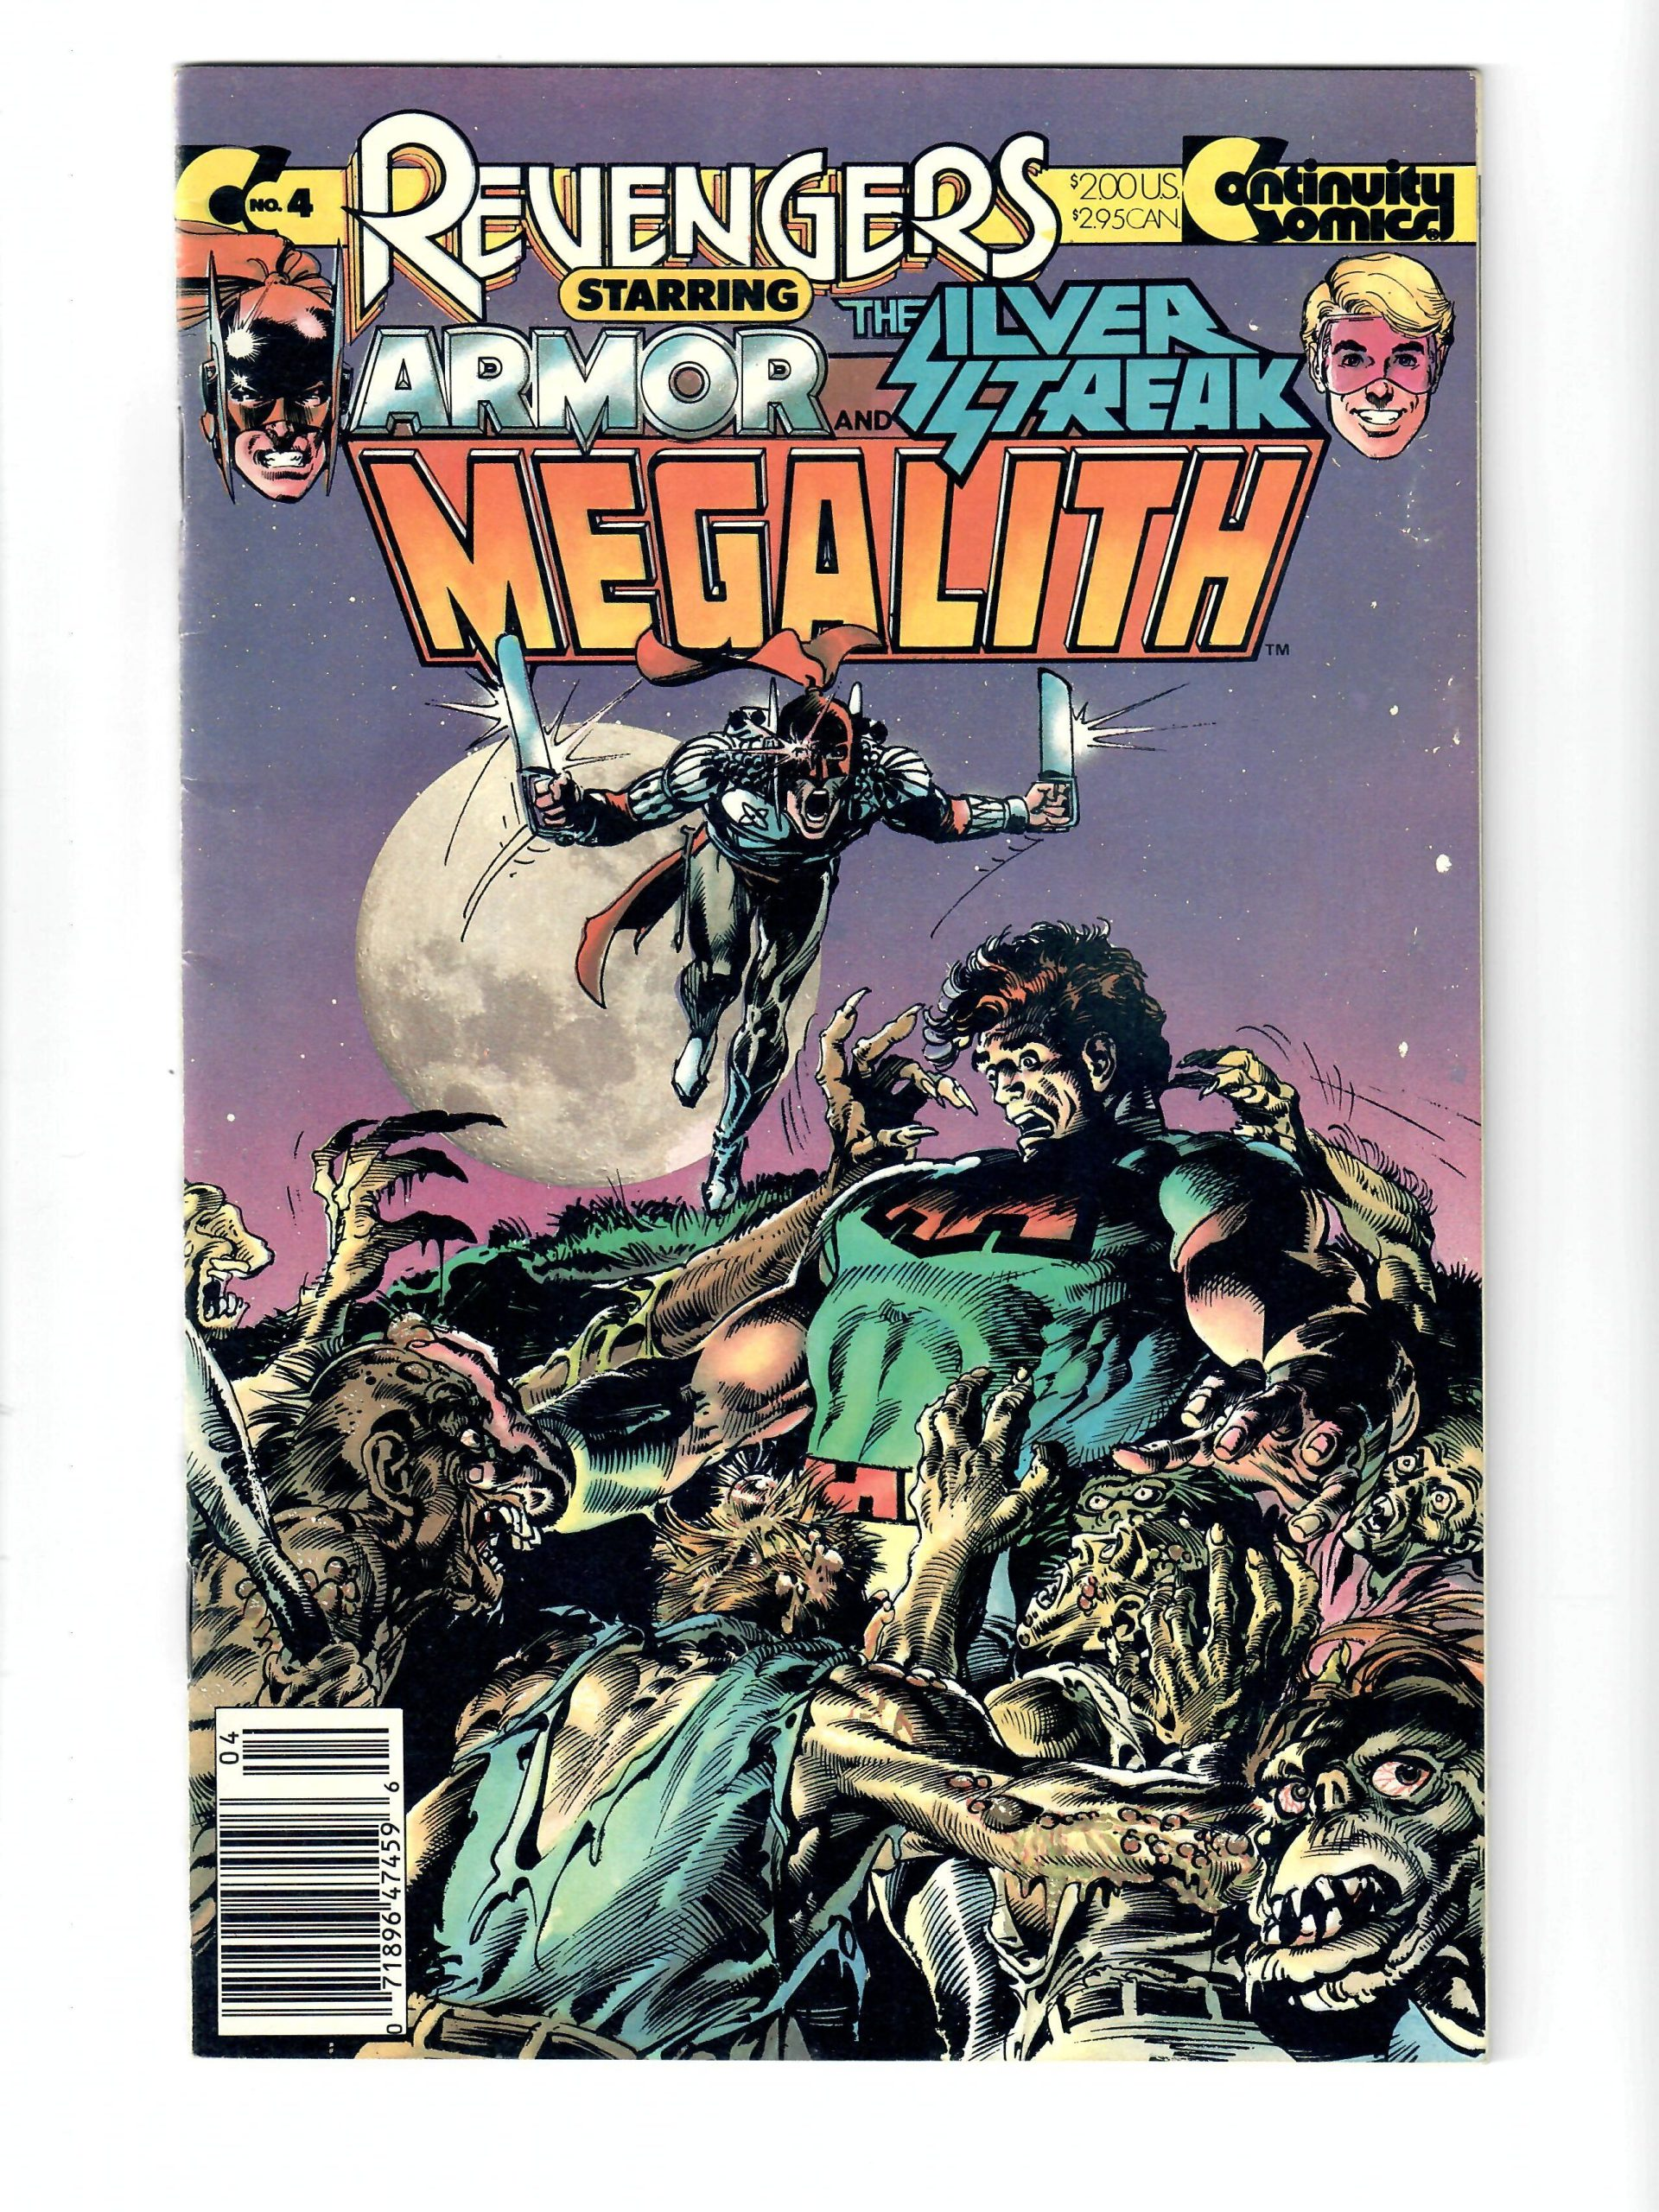 Continuity Comics Armor and The Silver Streak Megalith #4 Mar 1988 Comic #141760-10